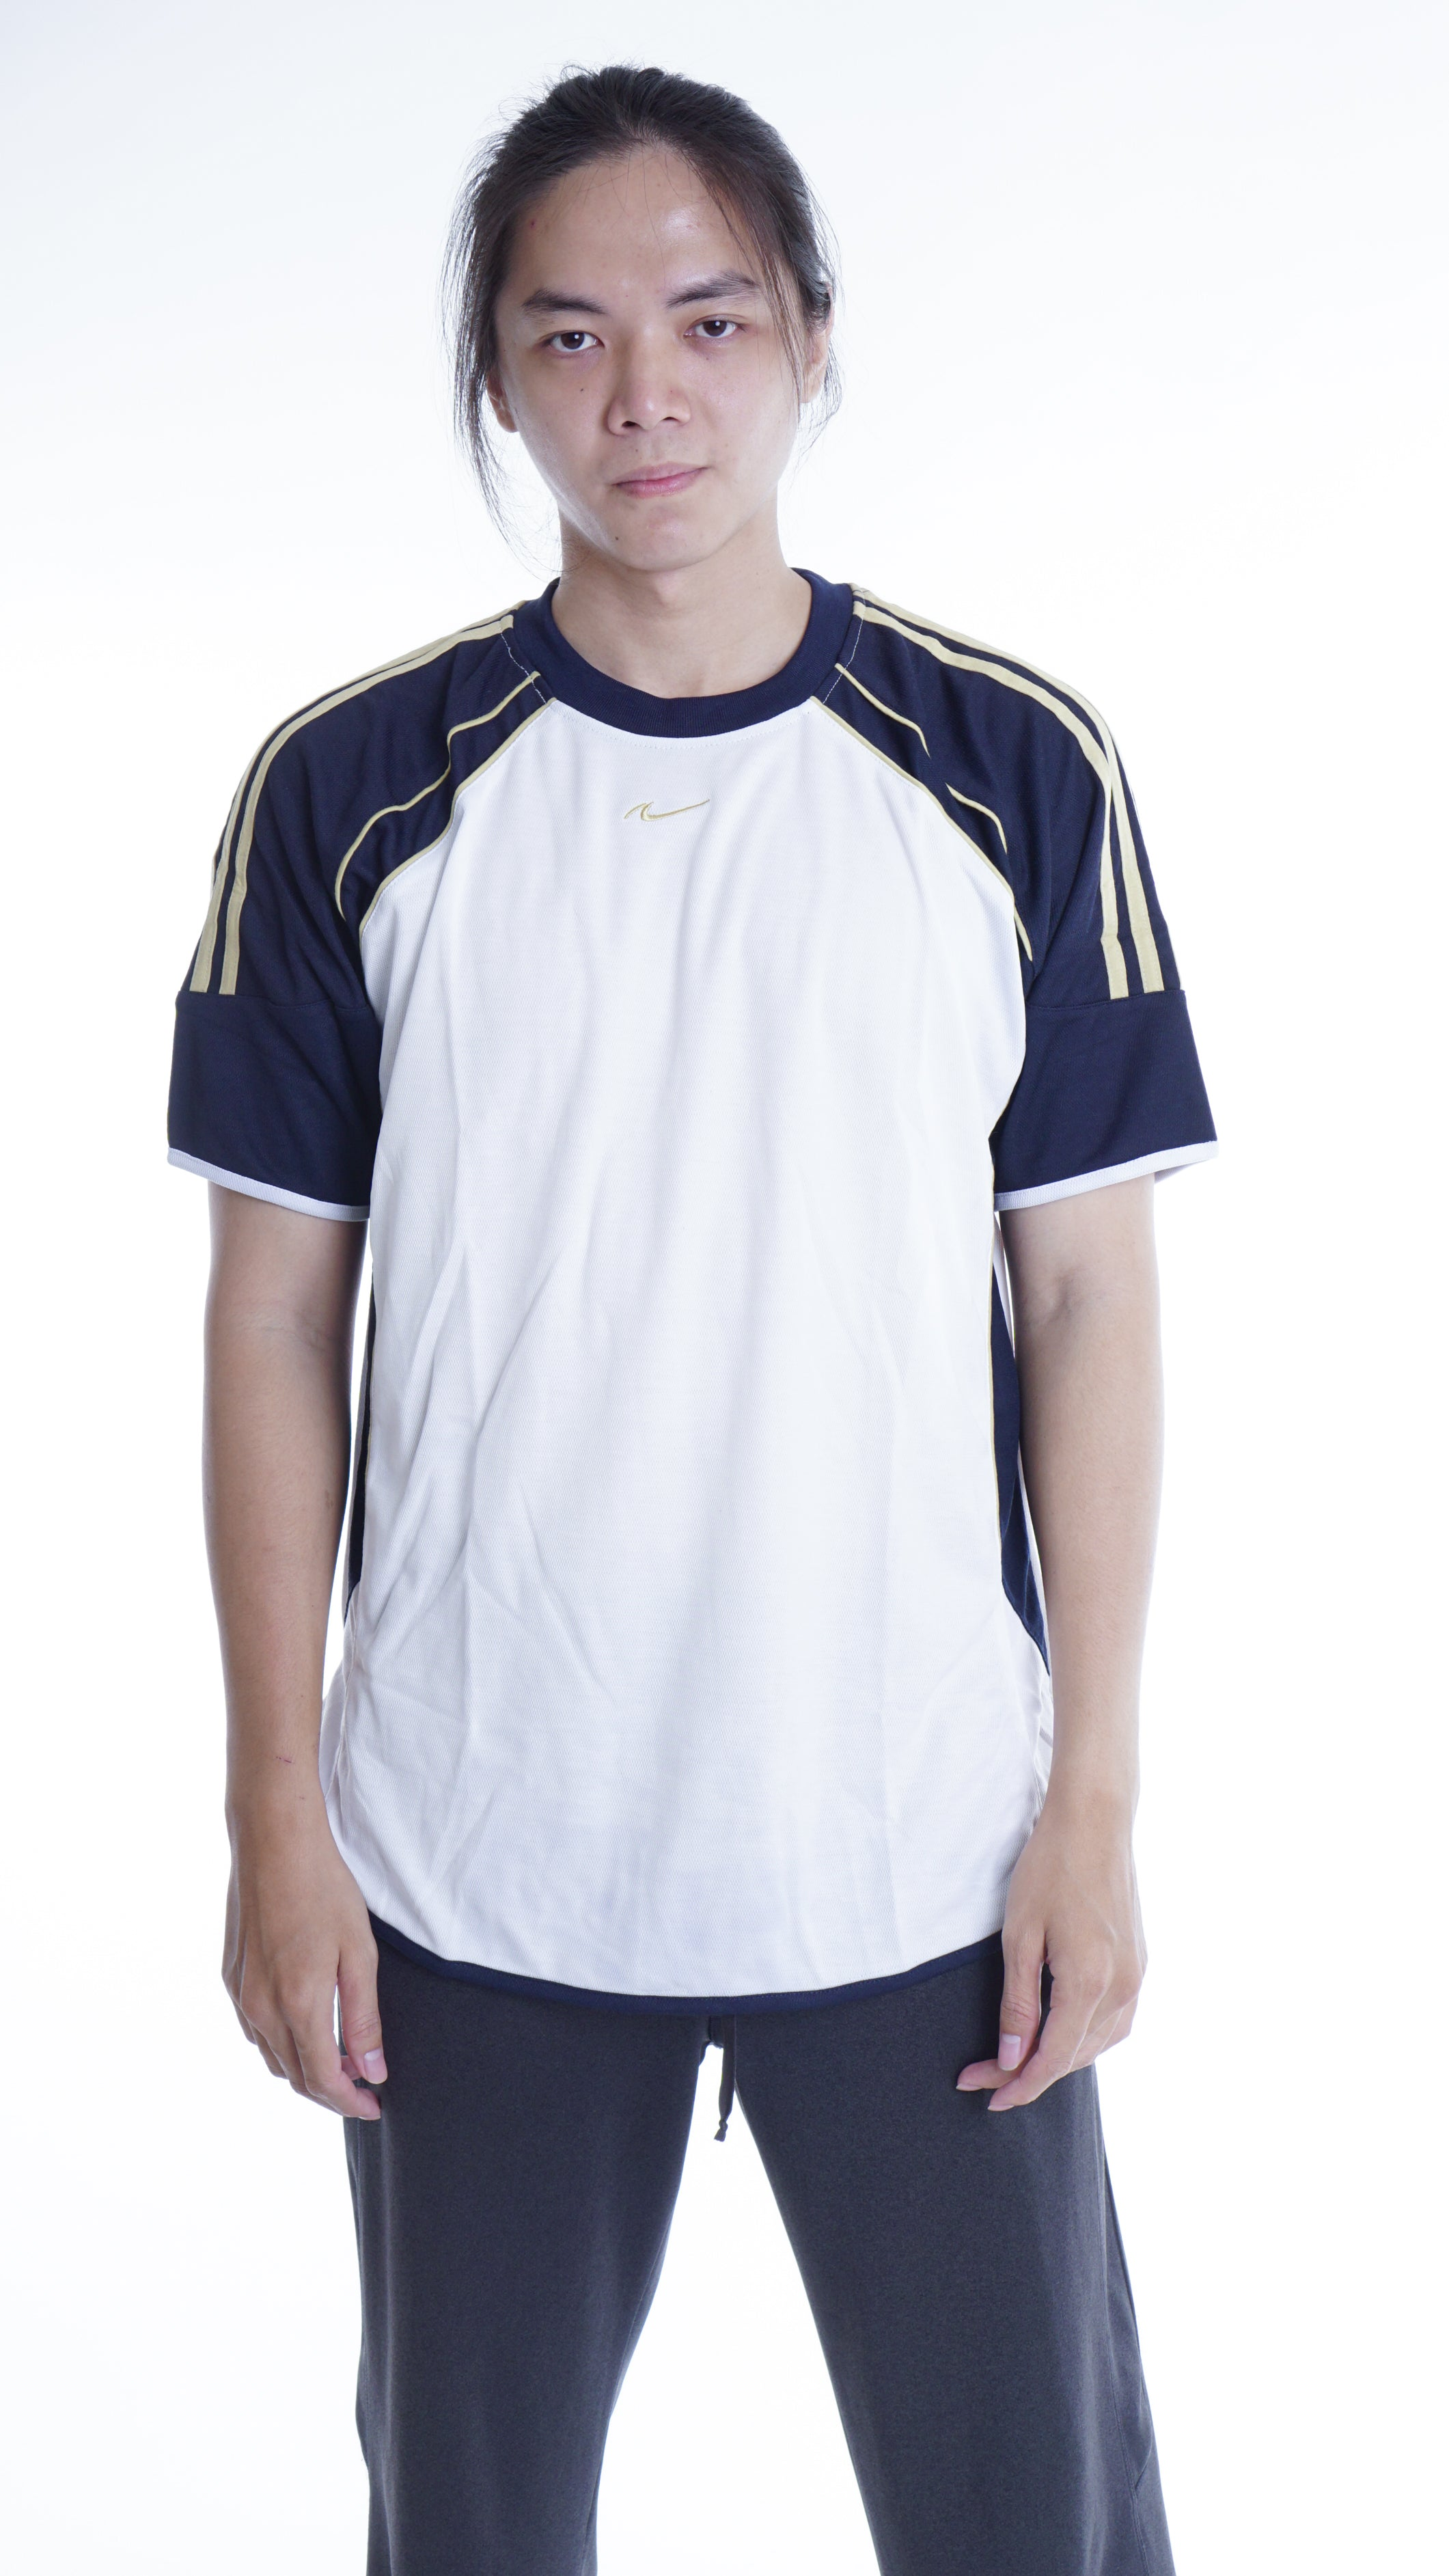 NICE DRYFIT COTTON TEE OBLONG CHELSEA JERSEY PUTIH NAVY GOLD